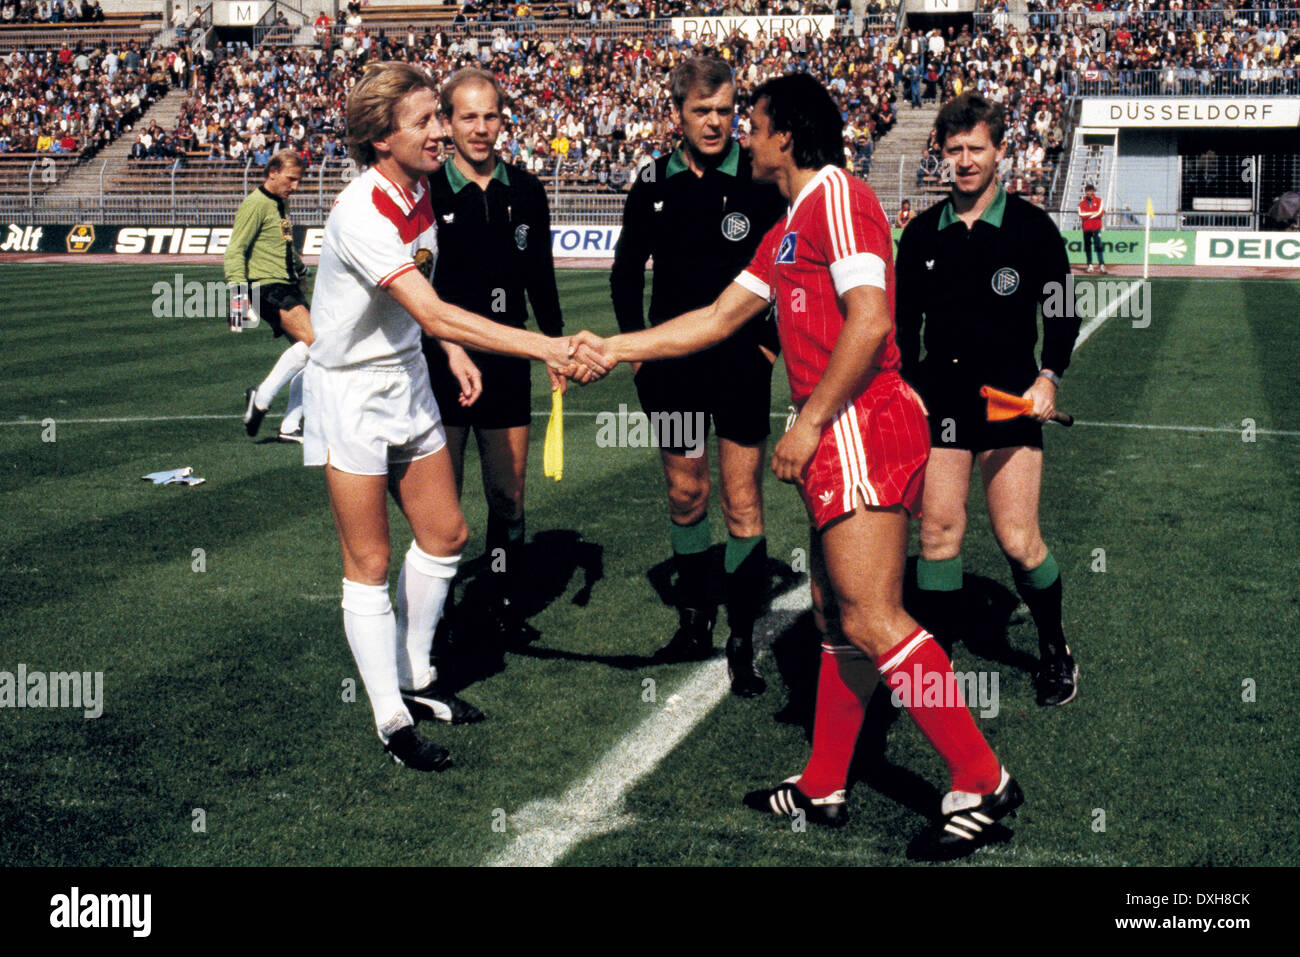 football, Bundesliga, 1983/1984, Rhine Stadium, Fortuna Duesseldorf versus Hamburger SV 2:3, welcome, teamleaders Gerd Zewe (Fortuna) left and Felix Magath (HSV), behind left keeper Wolfgang Kleff (Fortuna) and referee Adolf Ermer with assistants - Stock Image